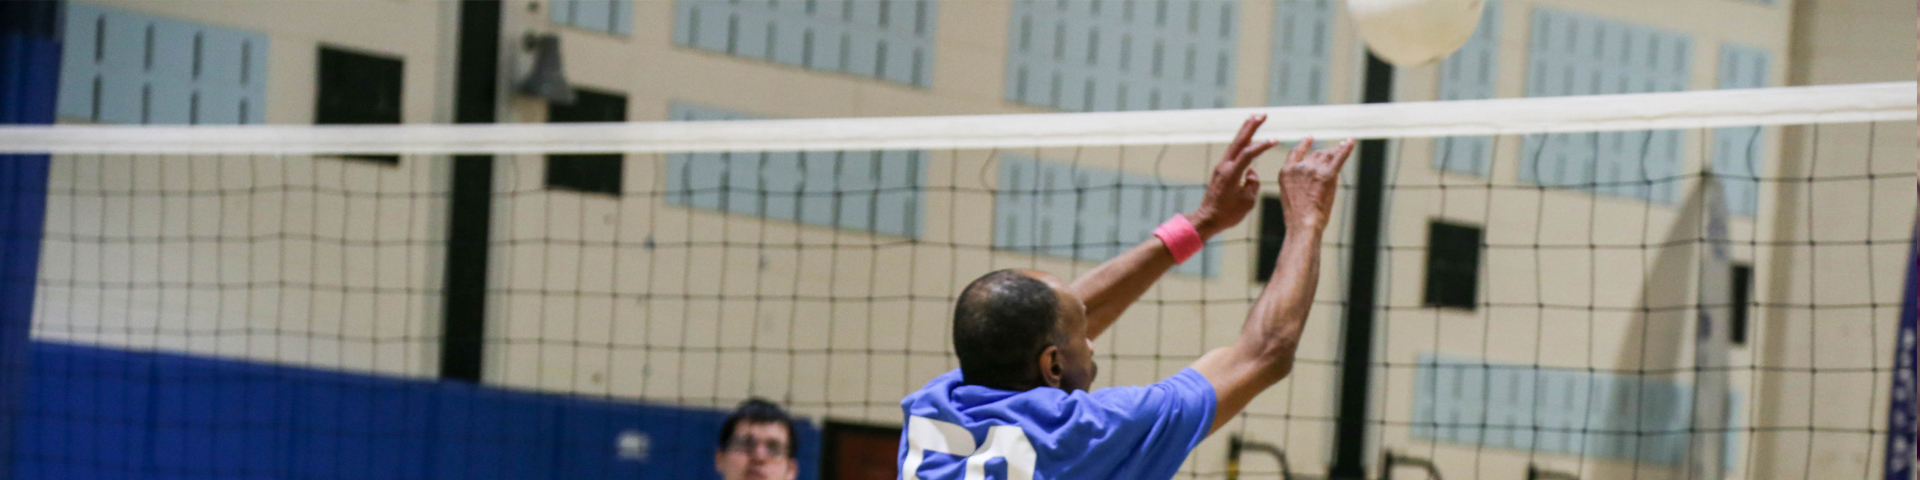 Volleyball Special Olympics New Jersey